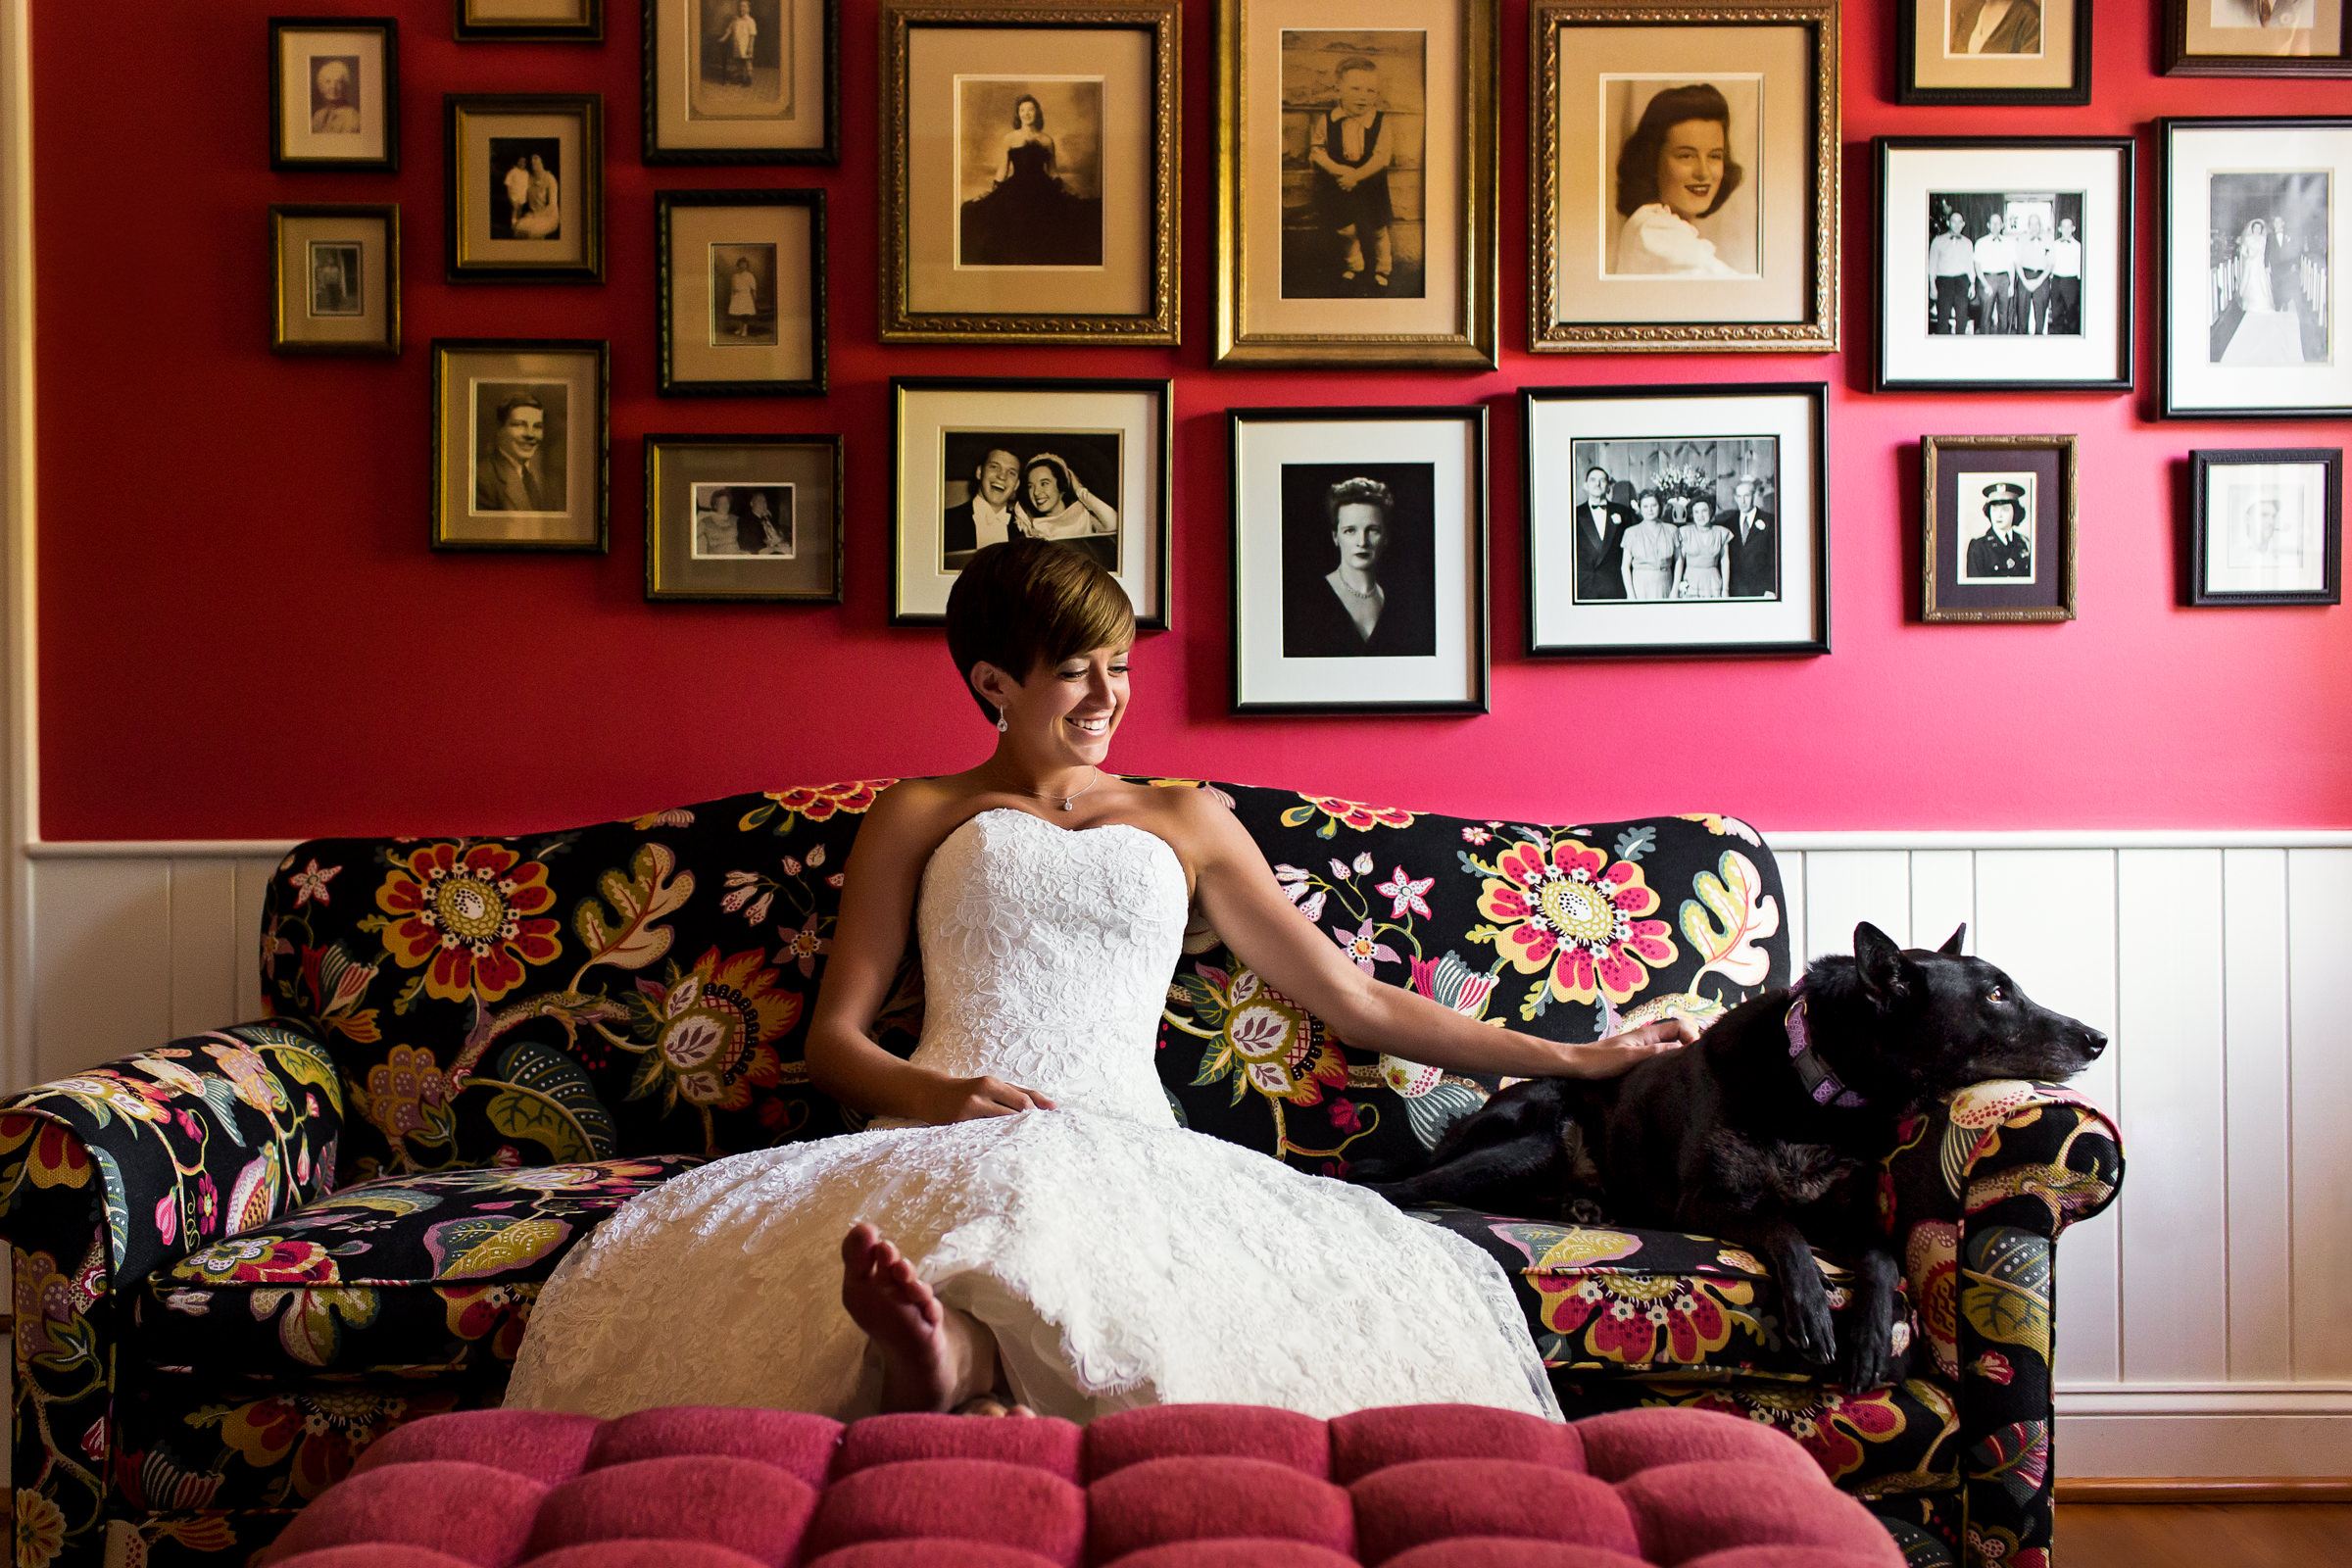 Bride with dog on floral couch against red wall covered in photos - photo by Procopio Photography